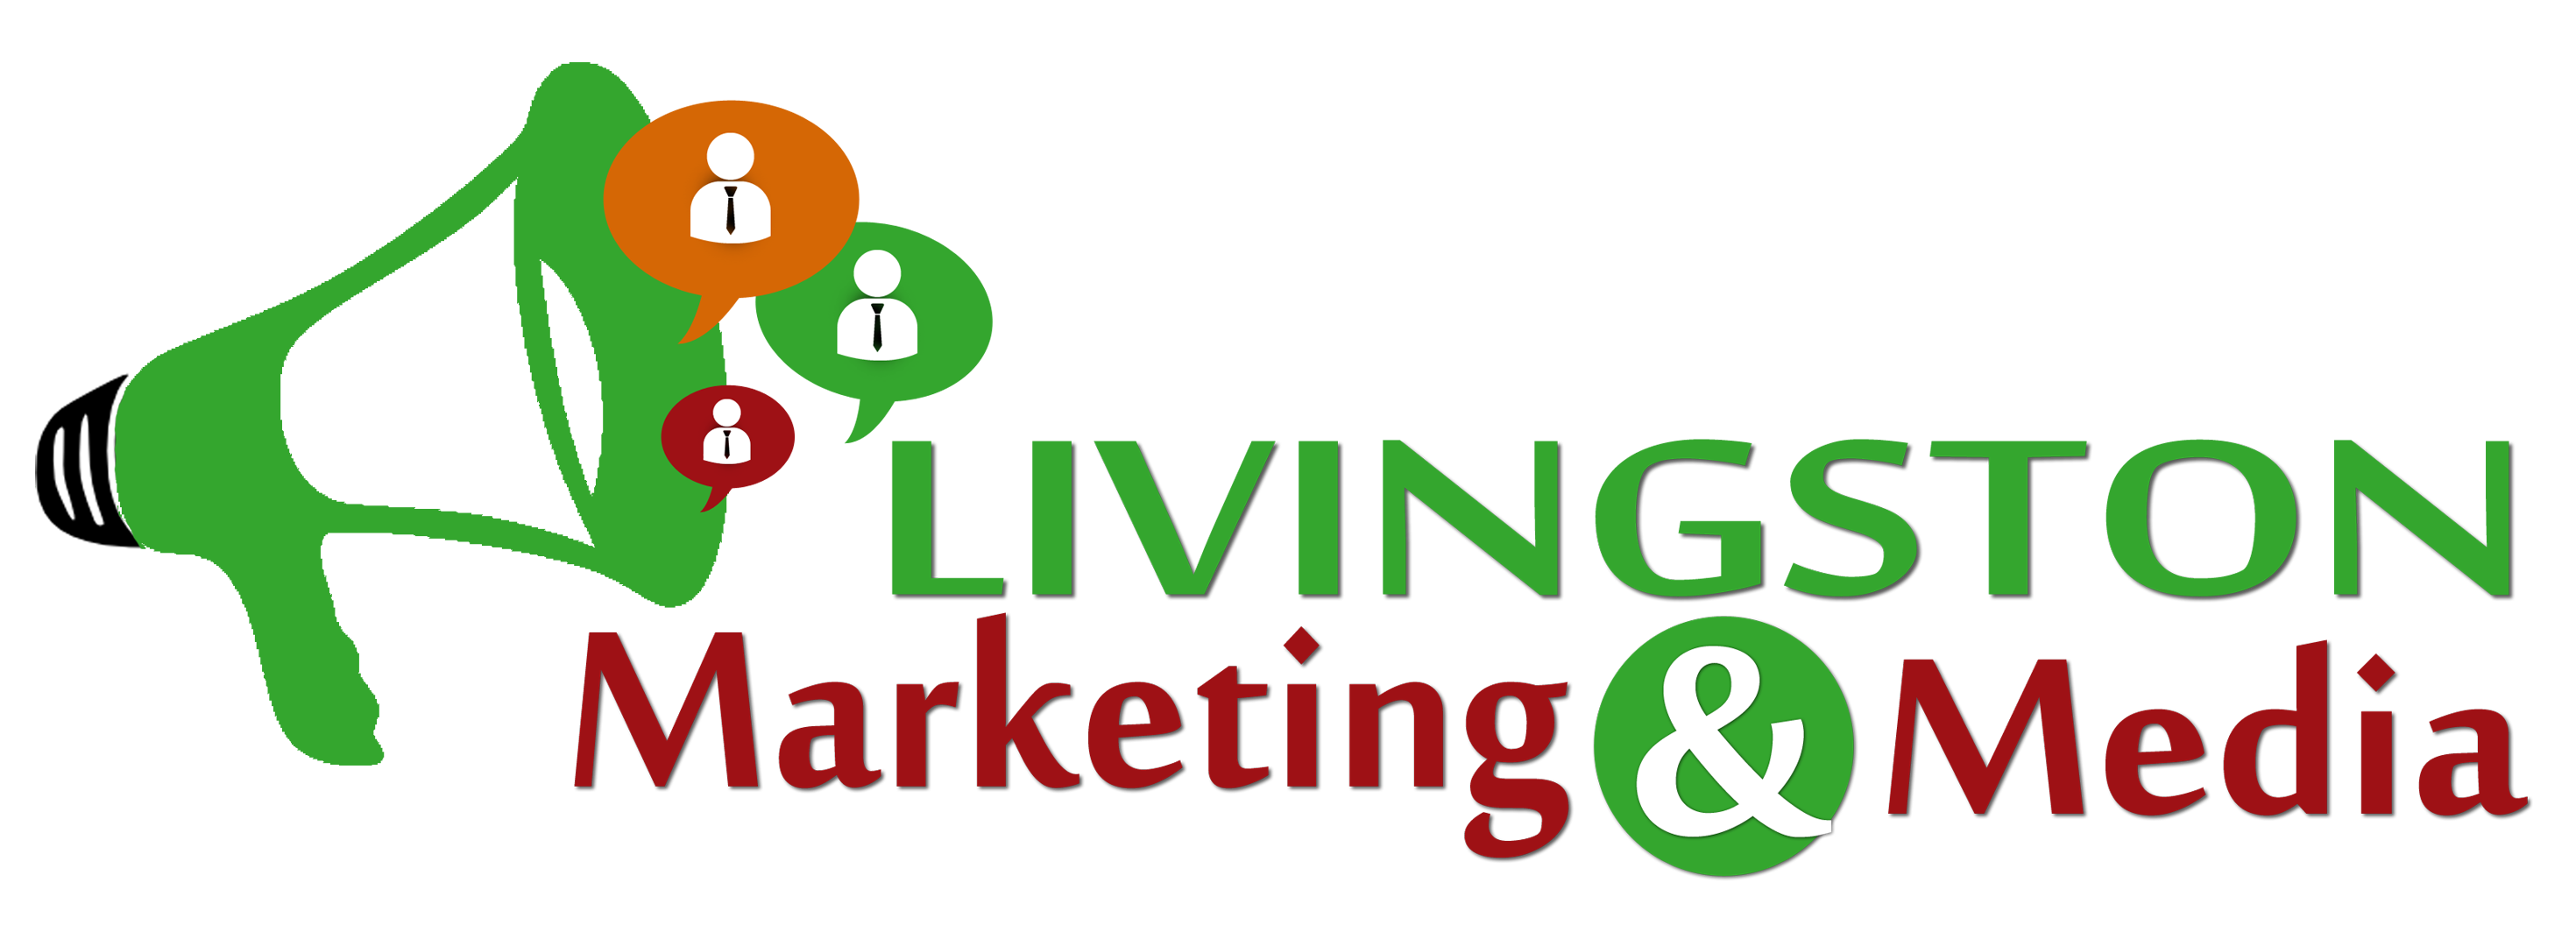 Livingston Marketing & Media